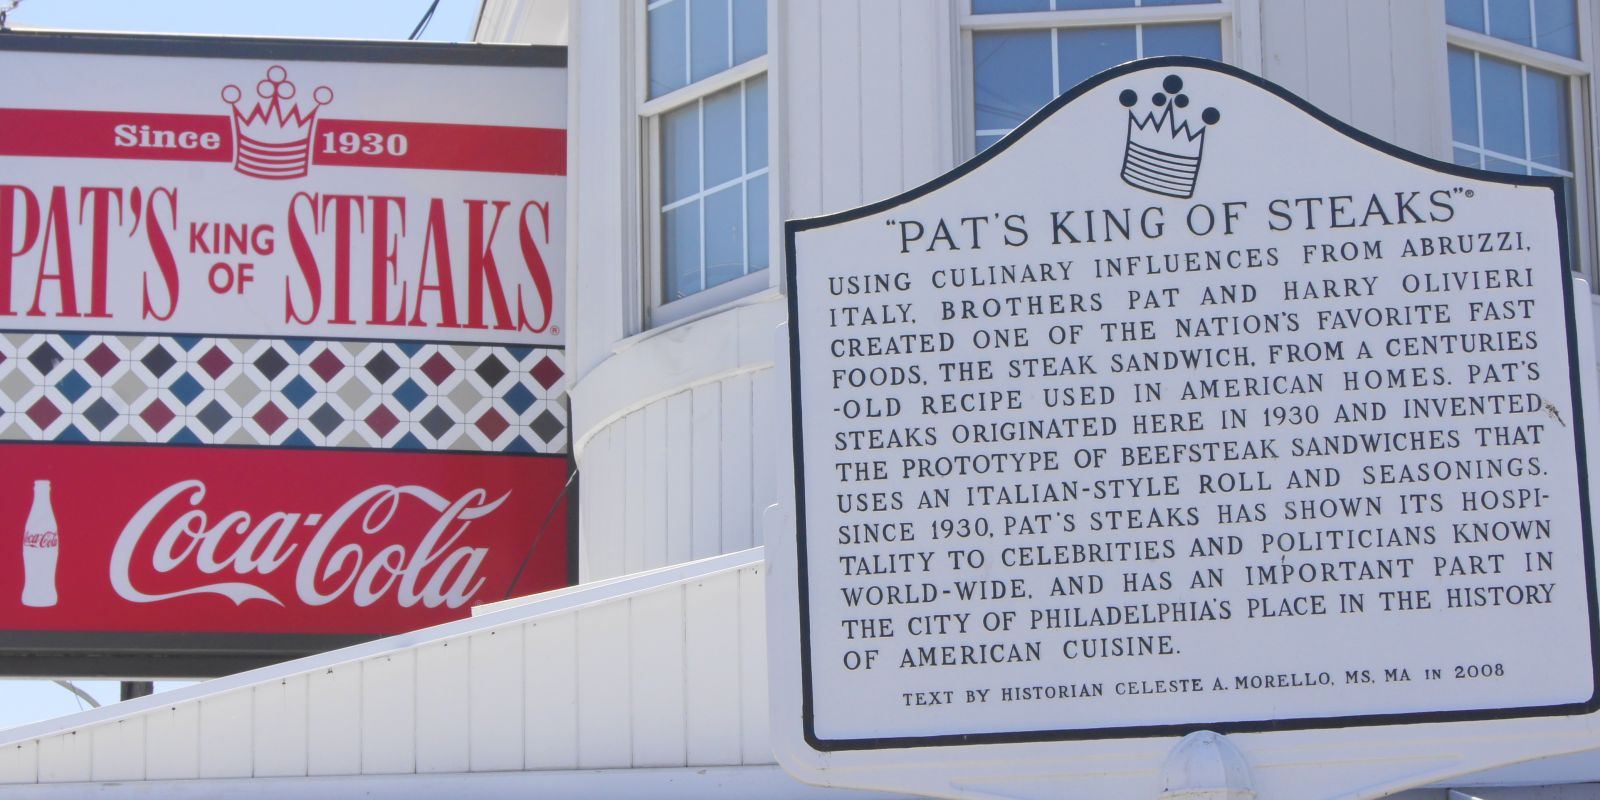 Pat's King of Steaks near Penn's View Hotel